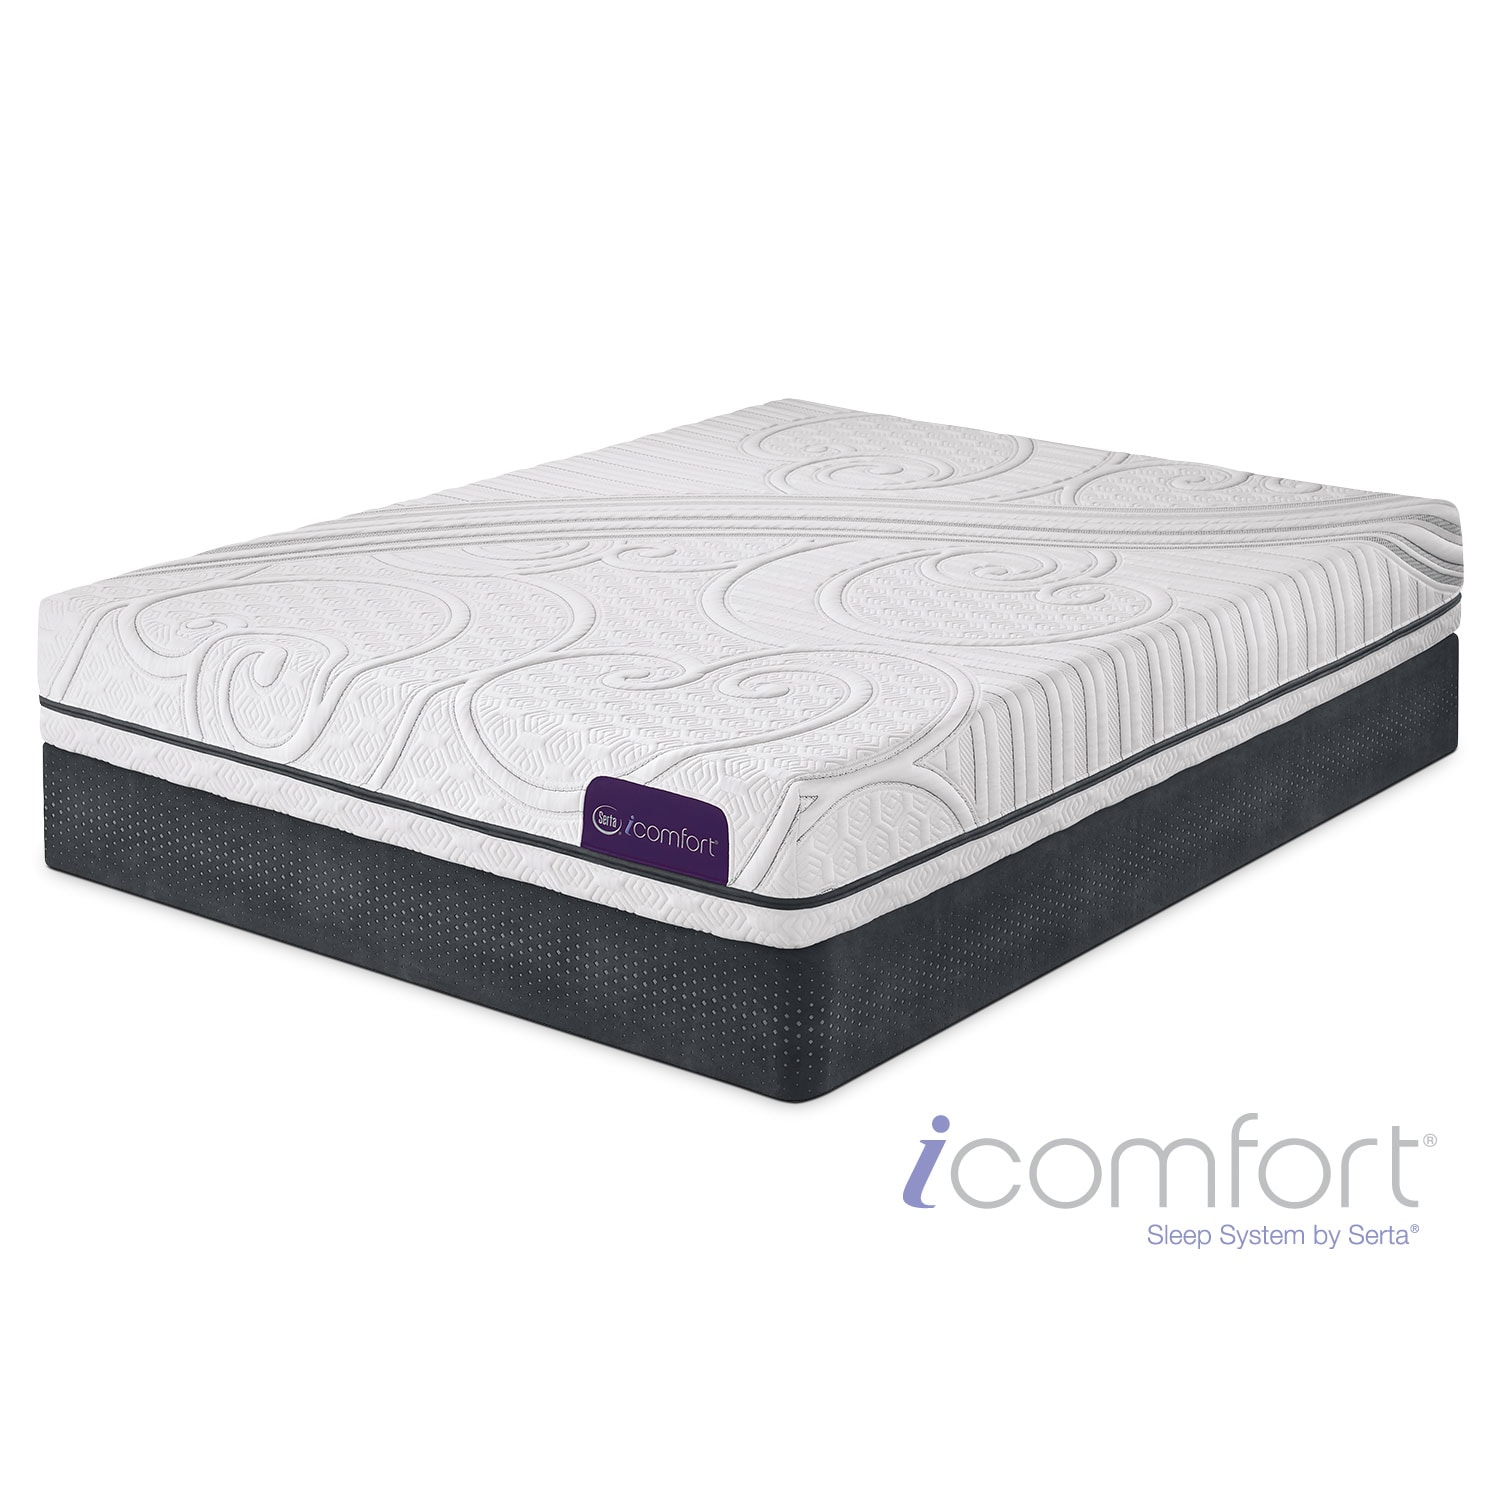 Mattresses and Bedding - iComfort Foresight Twin Mattress/Foundation Set